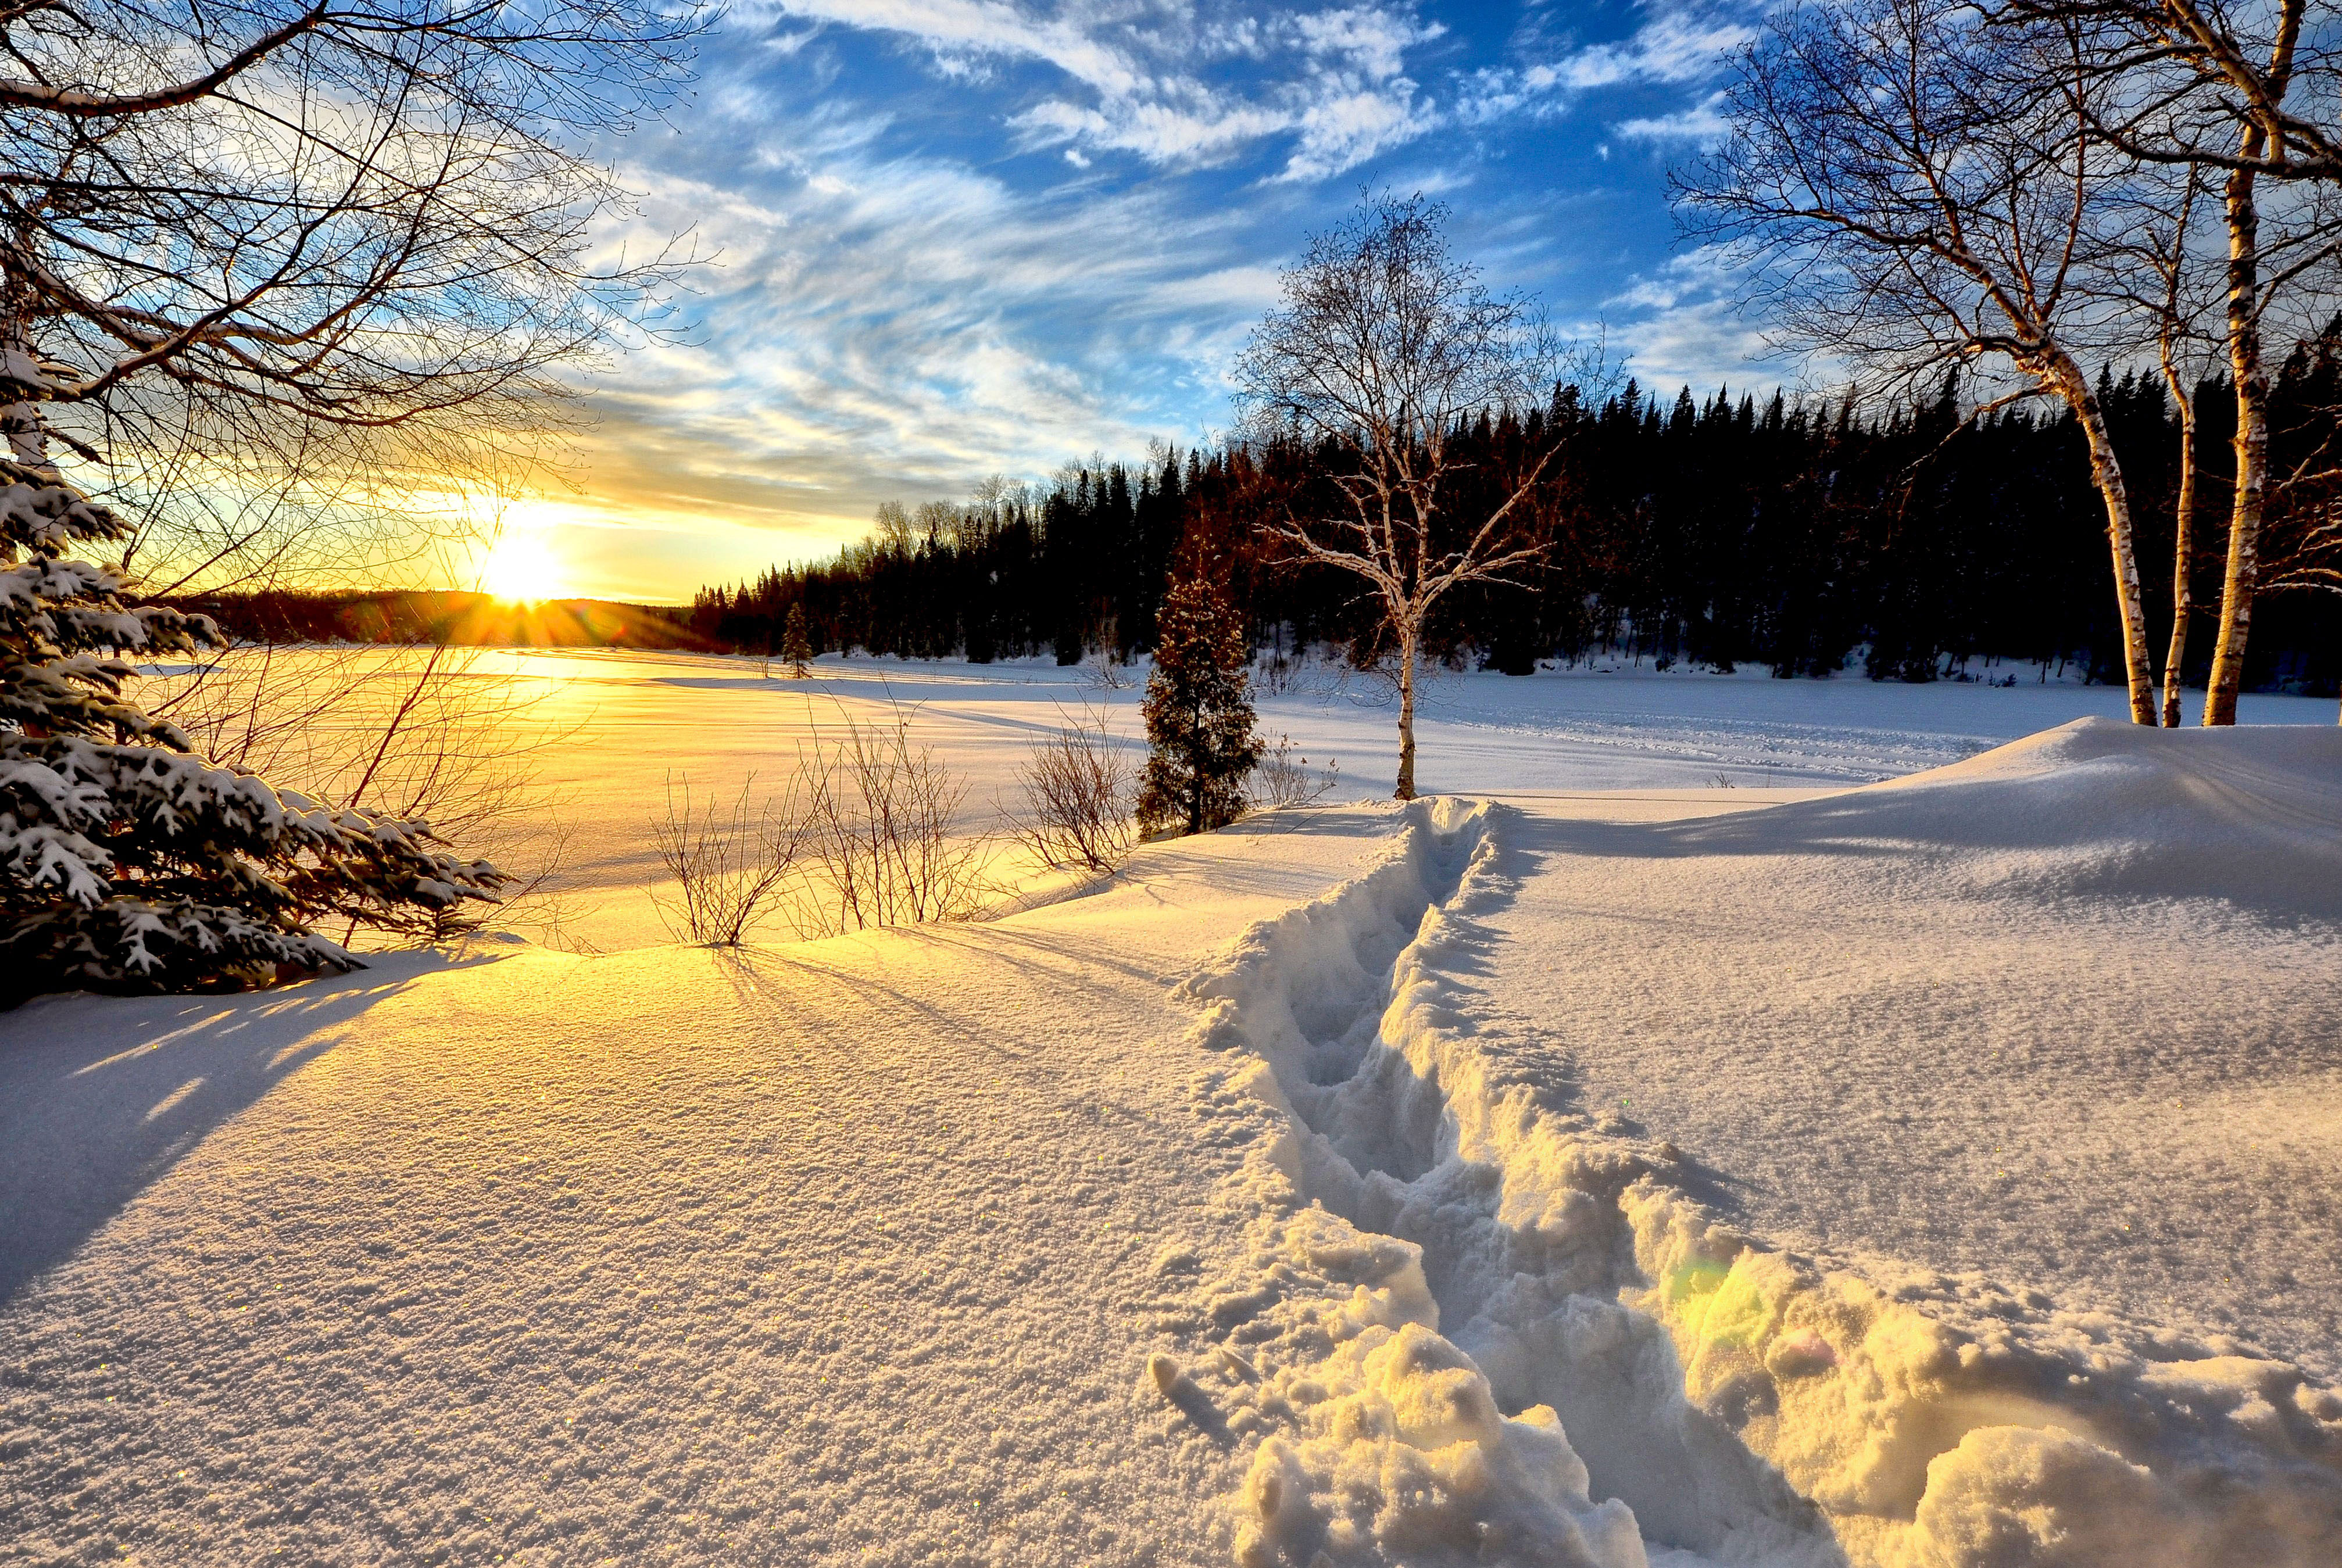 Winter Morning Sunrise Landscape Image Free Stock Photo Public